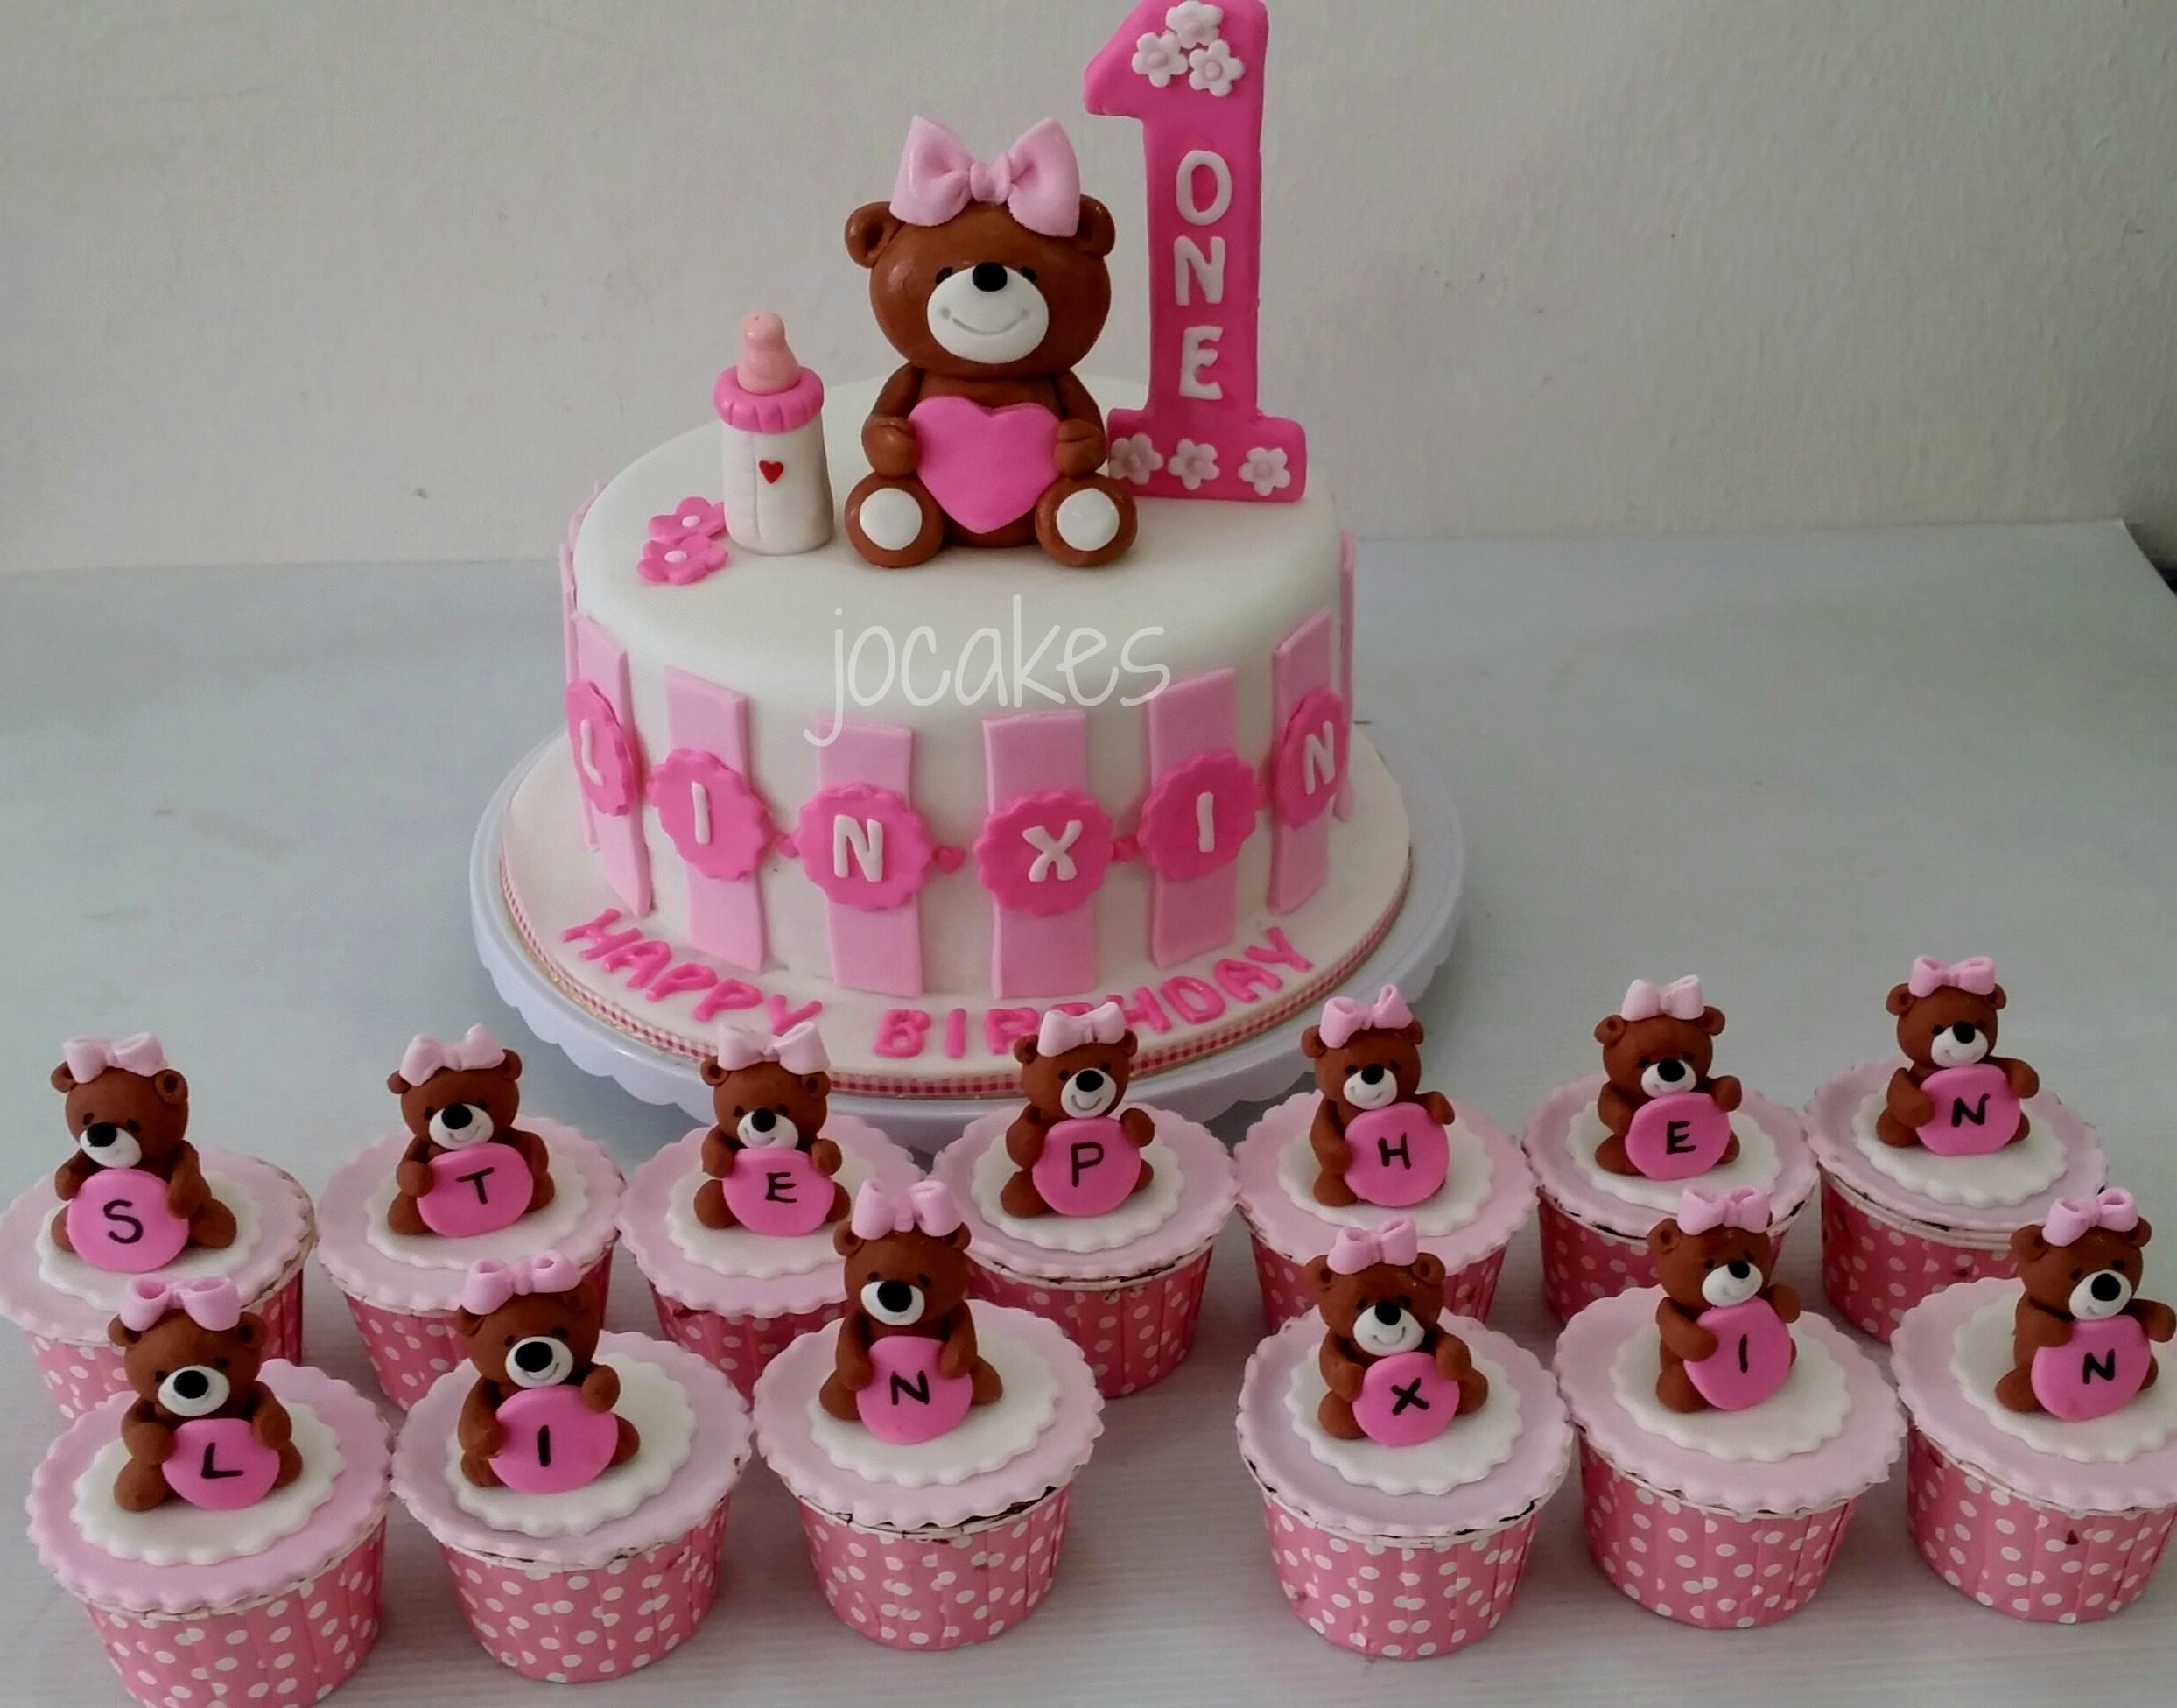 Birthday Cake For 2 Year Old Baby Girl Pictures : Birthday Cake For A Year Old Baby Girl Birthday cake ...